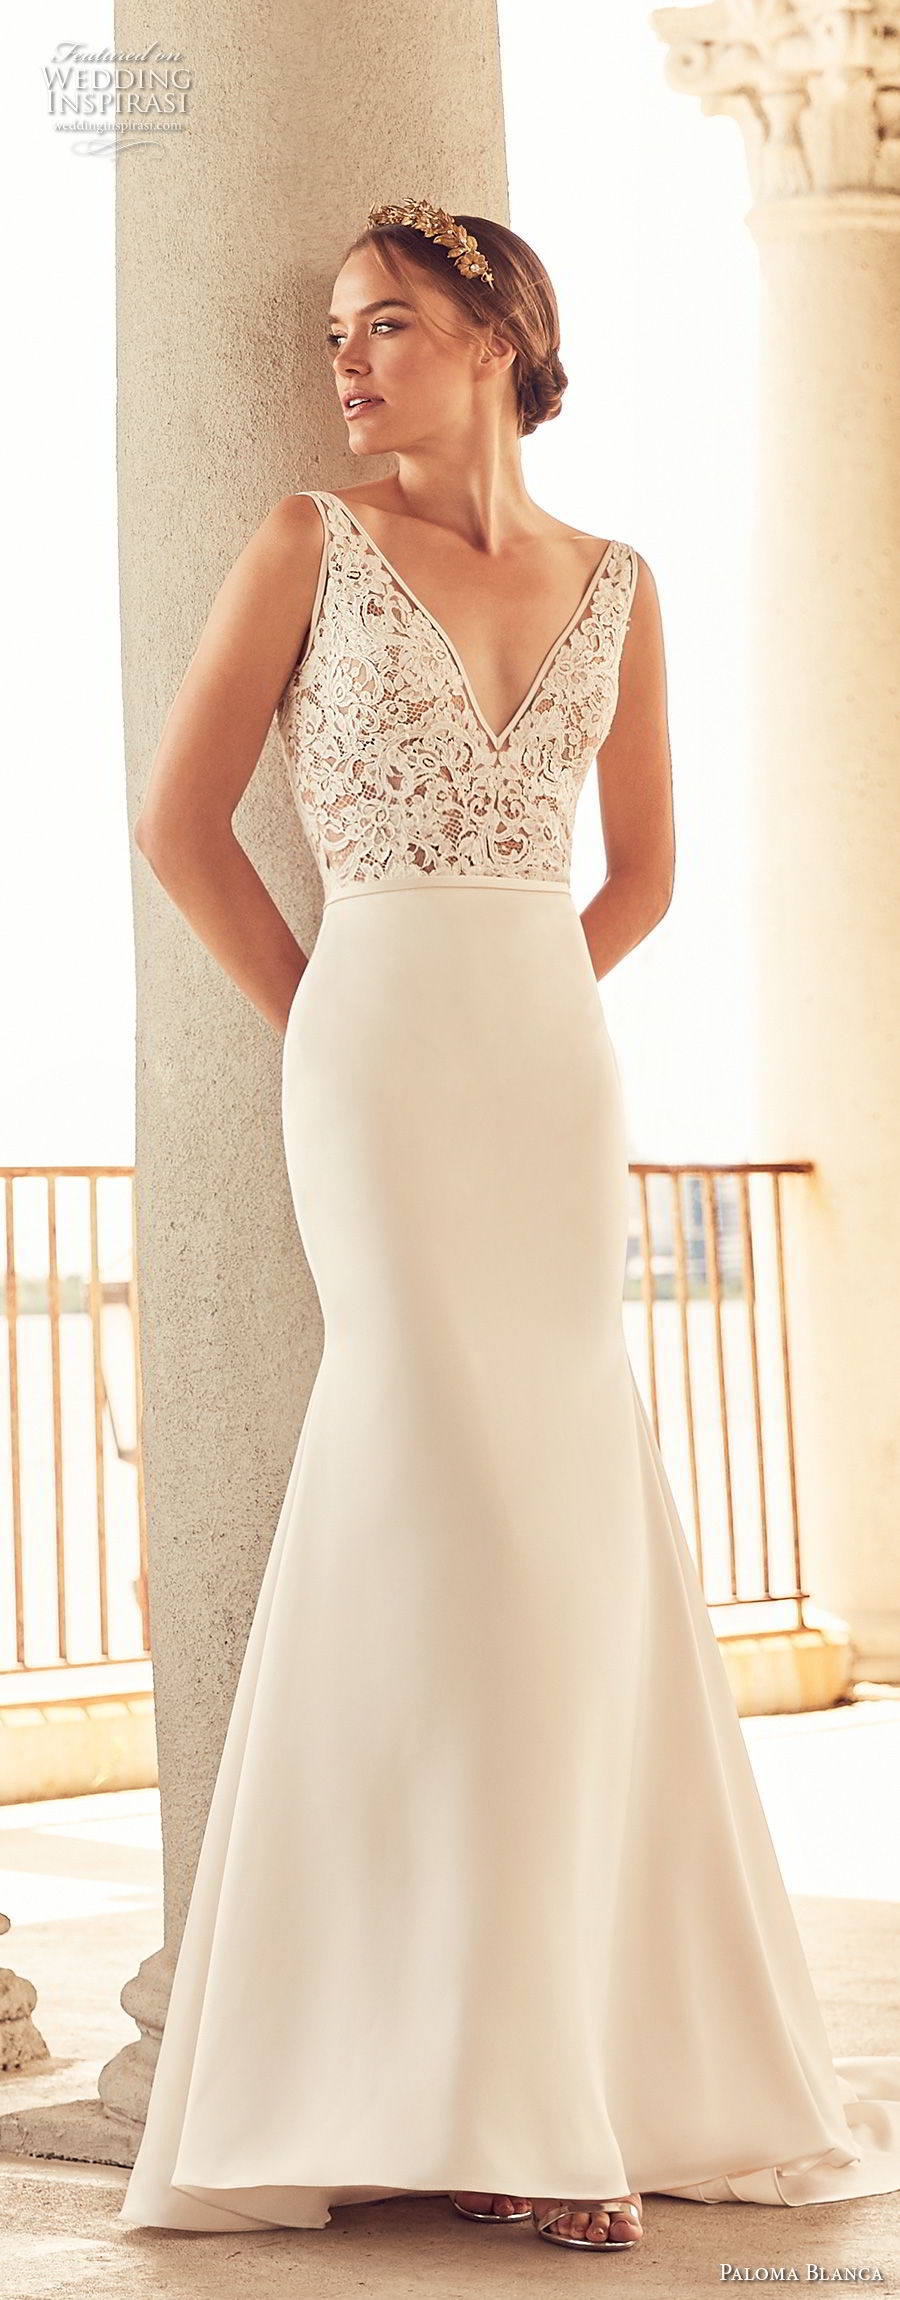 paloma blanca spring 2018 bridal sleeveless v neck heavily embellished bodice mermaid wedding dress open v back chapel train (16) mv